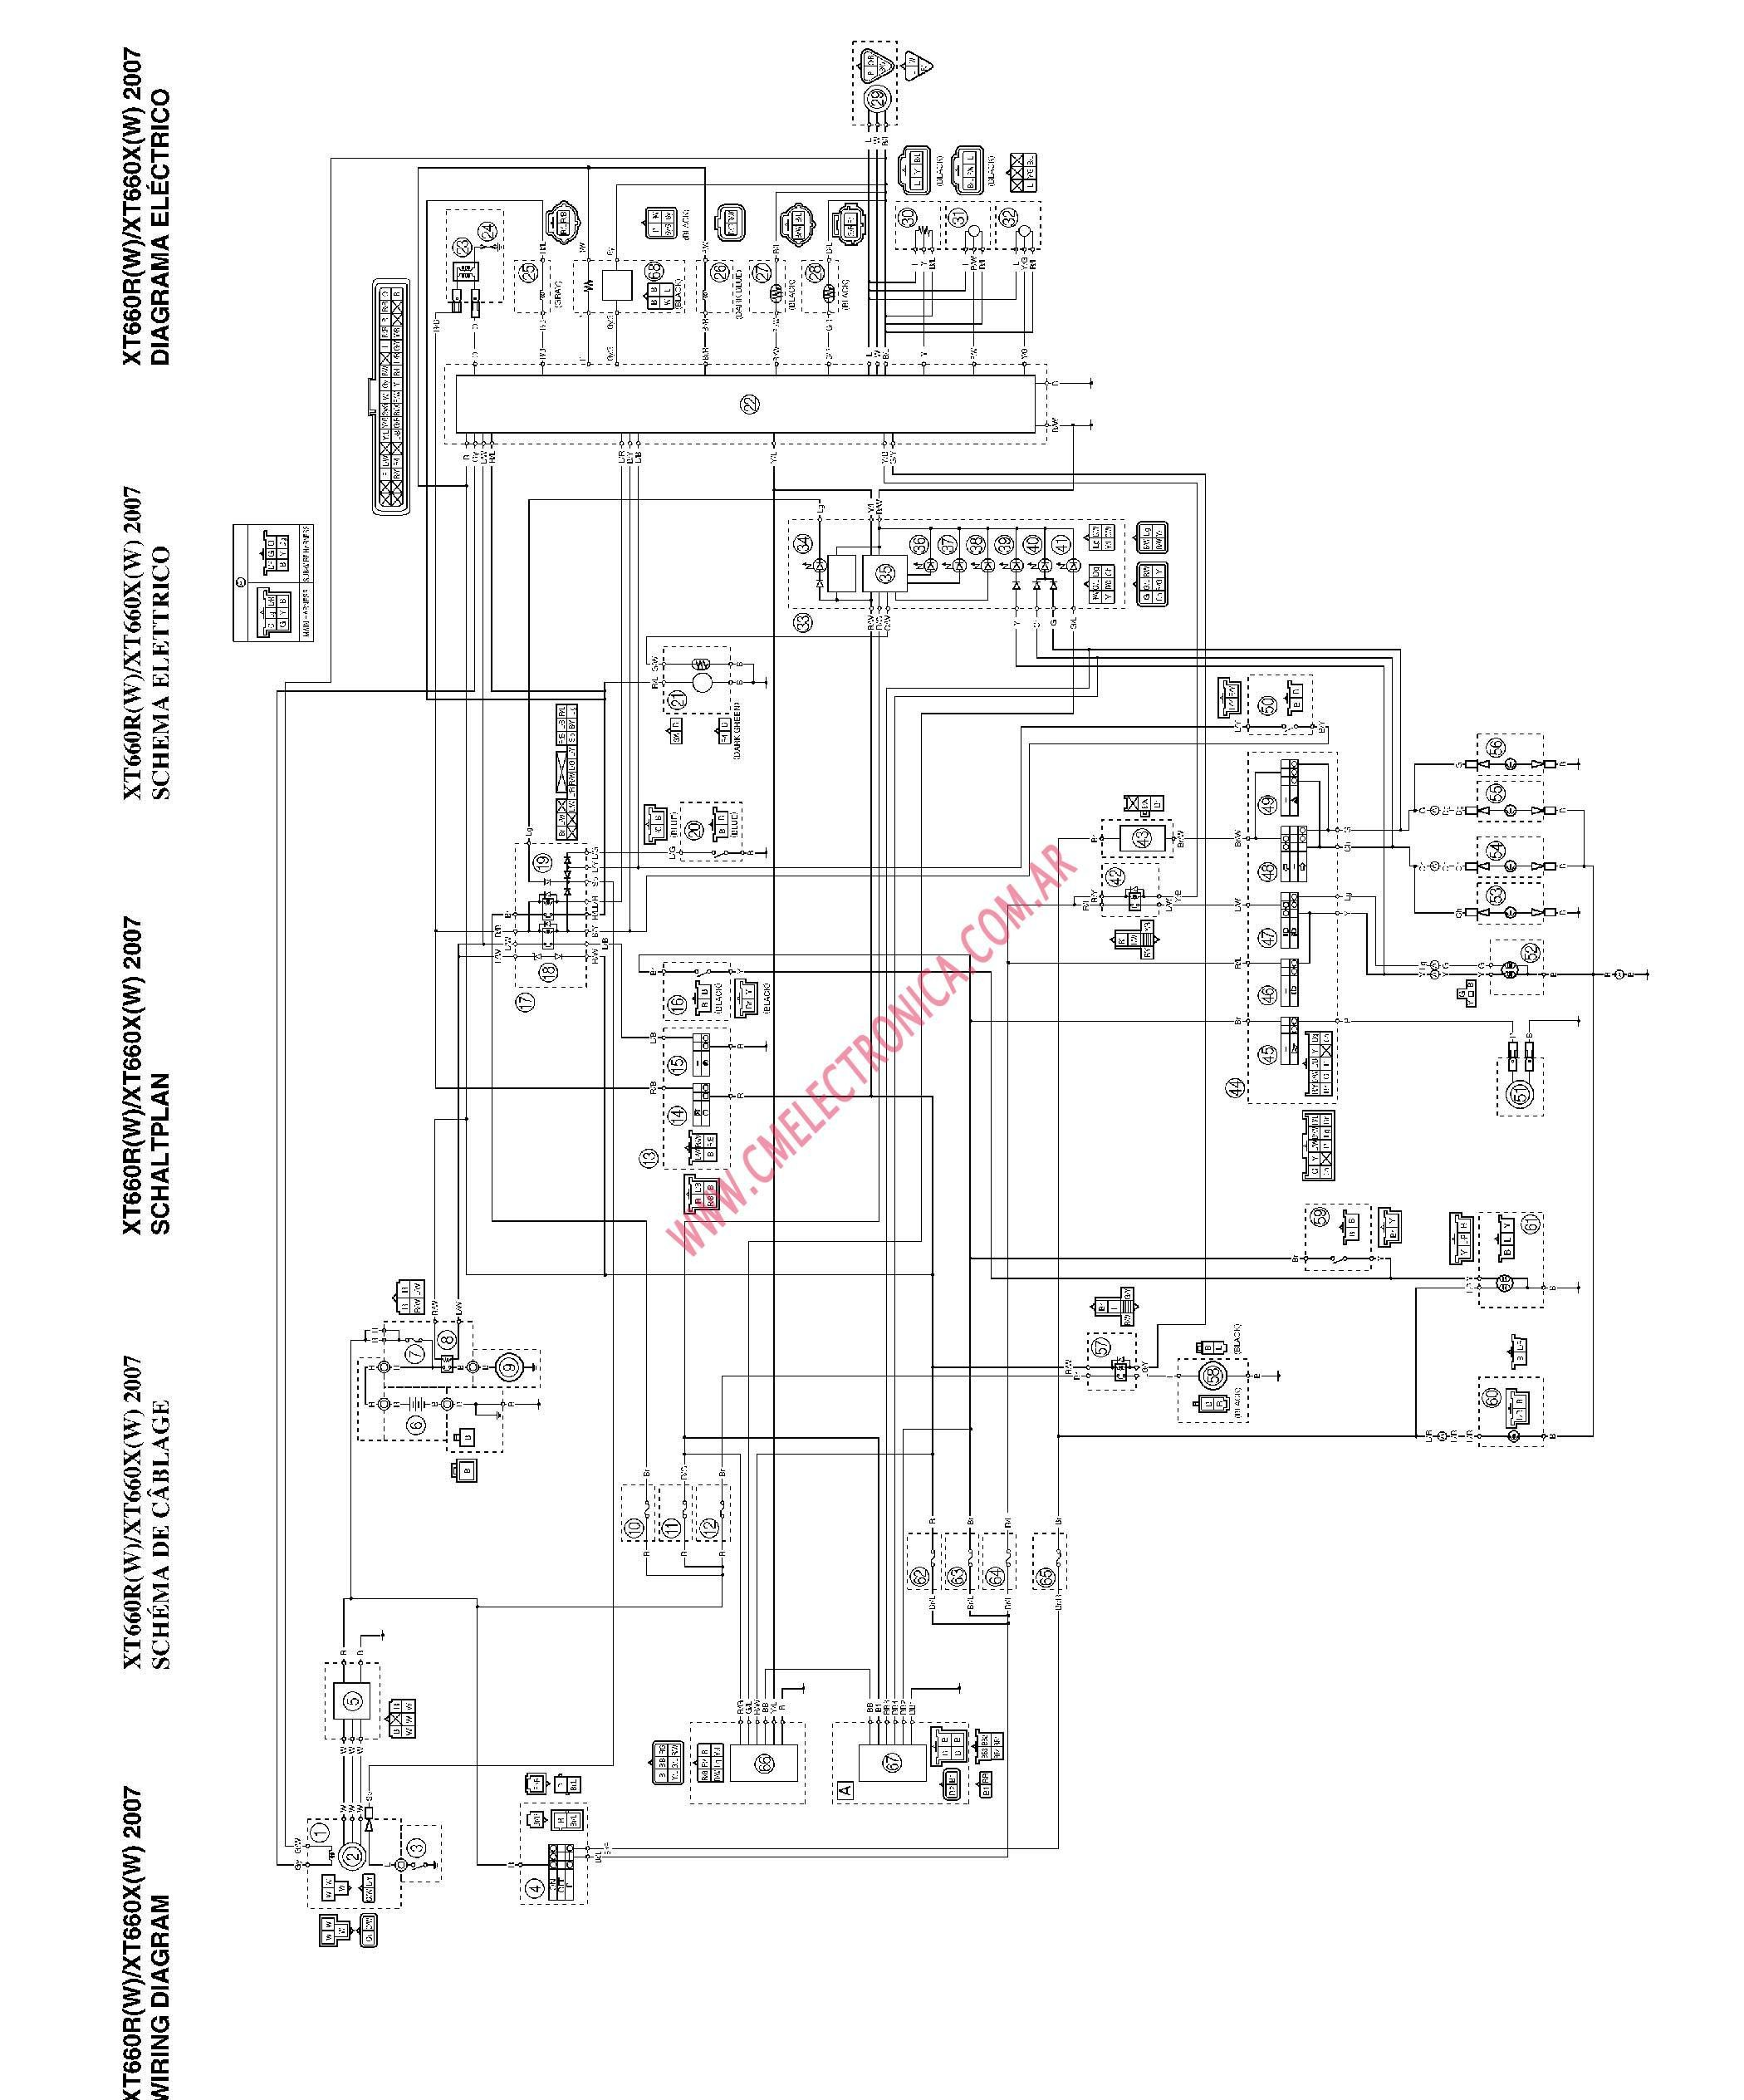 wiring diagram for banshee